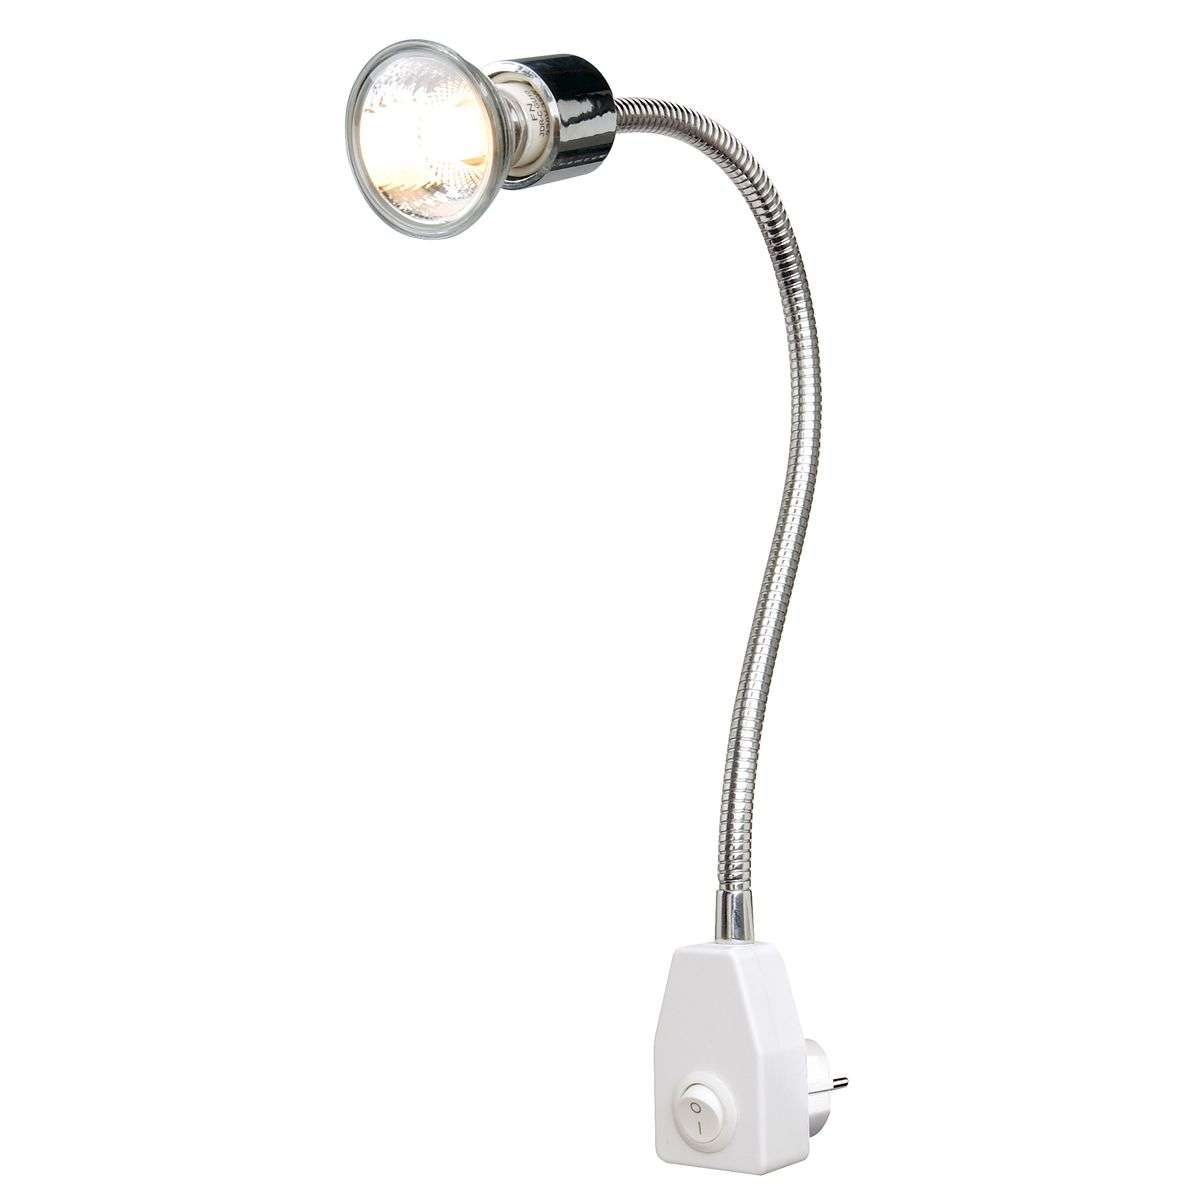 Displaylamp Dio Flex Plug met GU10-fitting-5504388-31